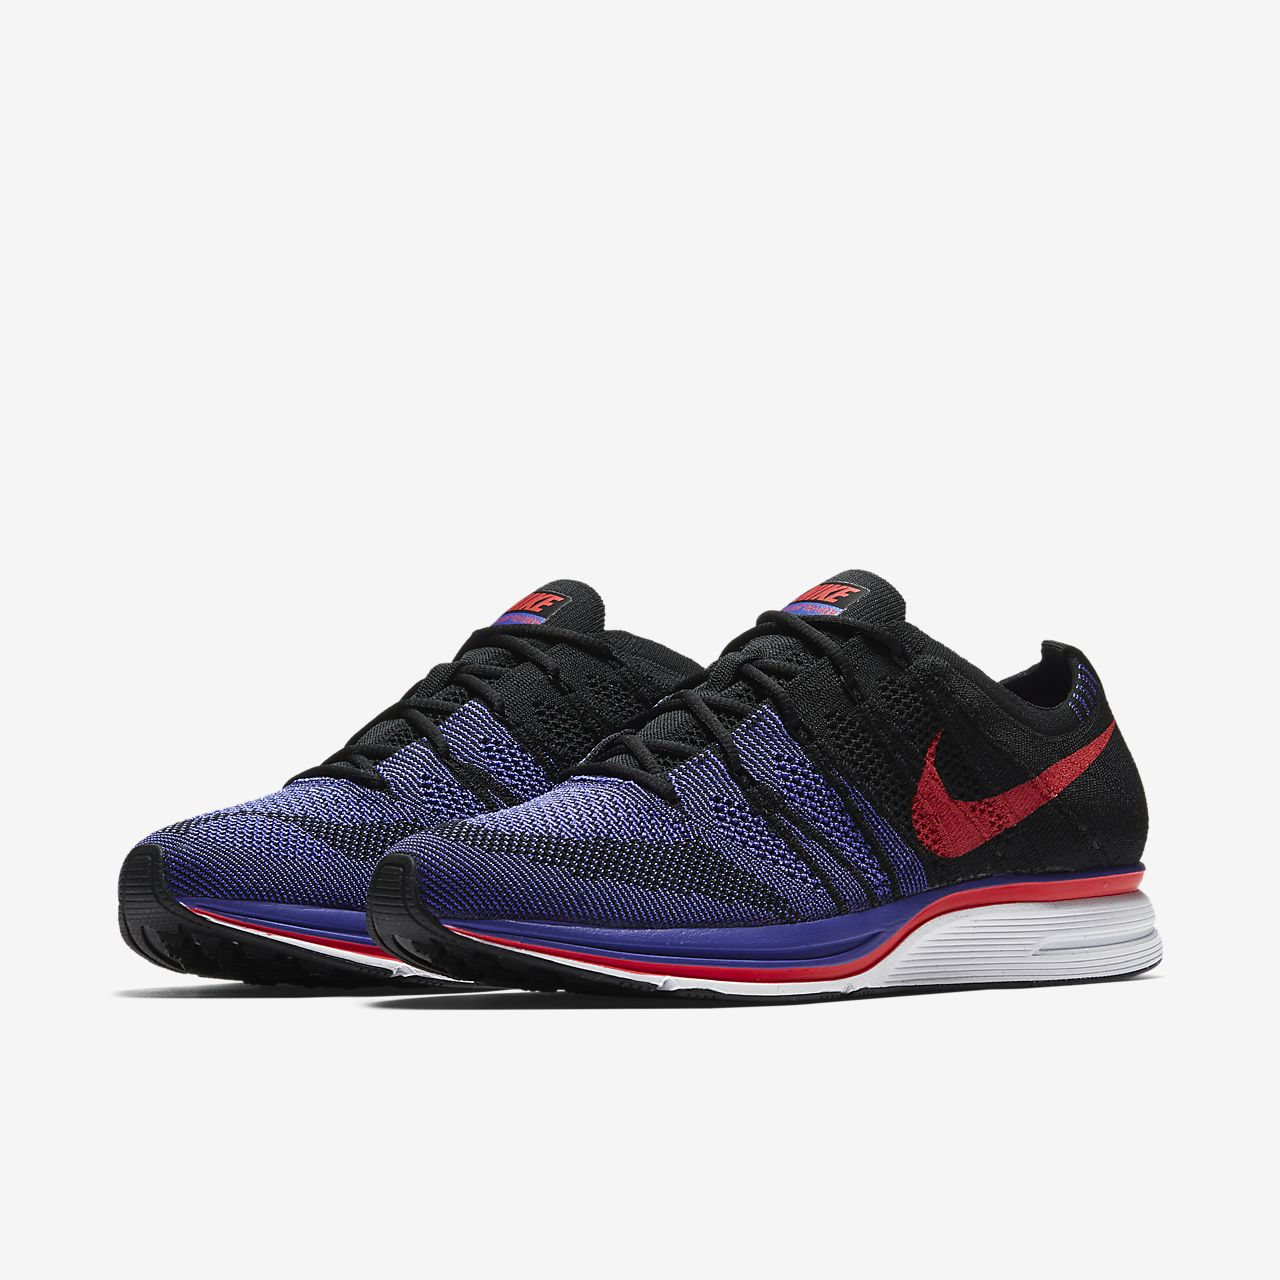 promo code a3bf1 caf44 ... Chaussure mixte Nike Flyknit Trainer